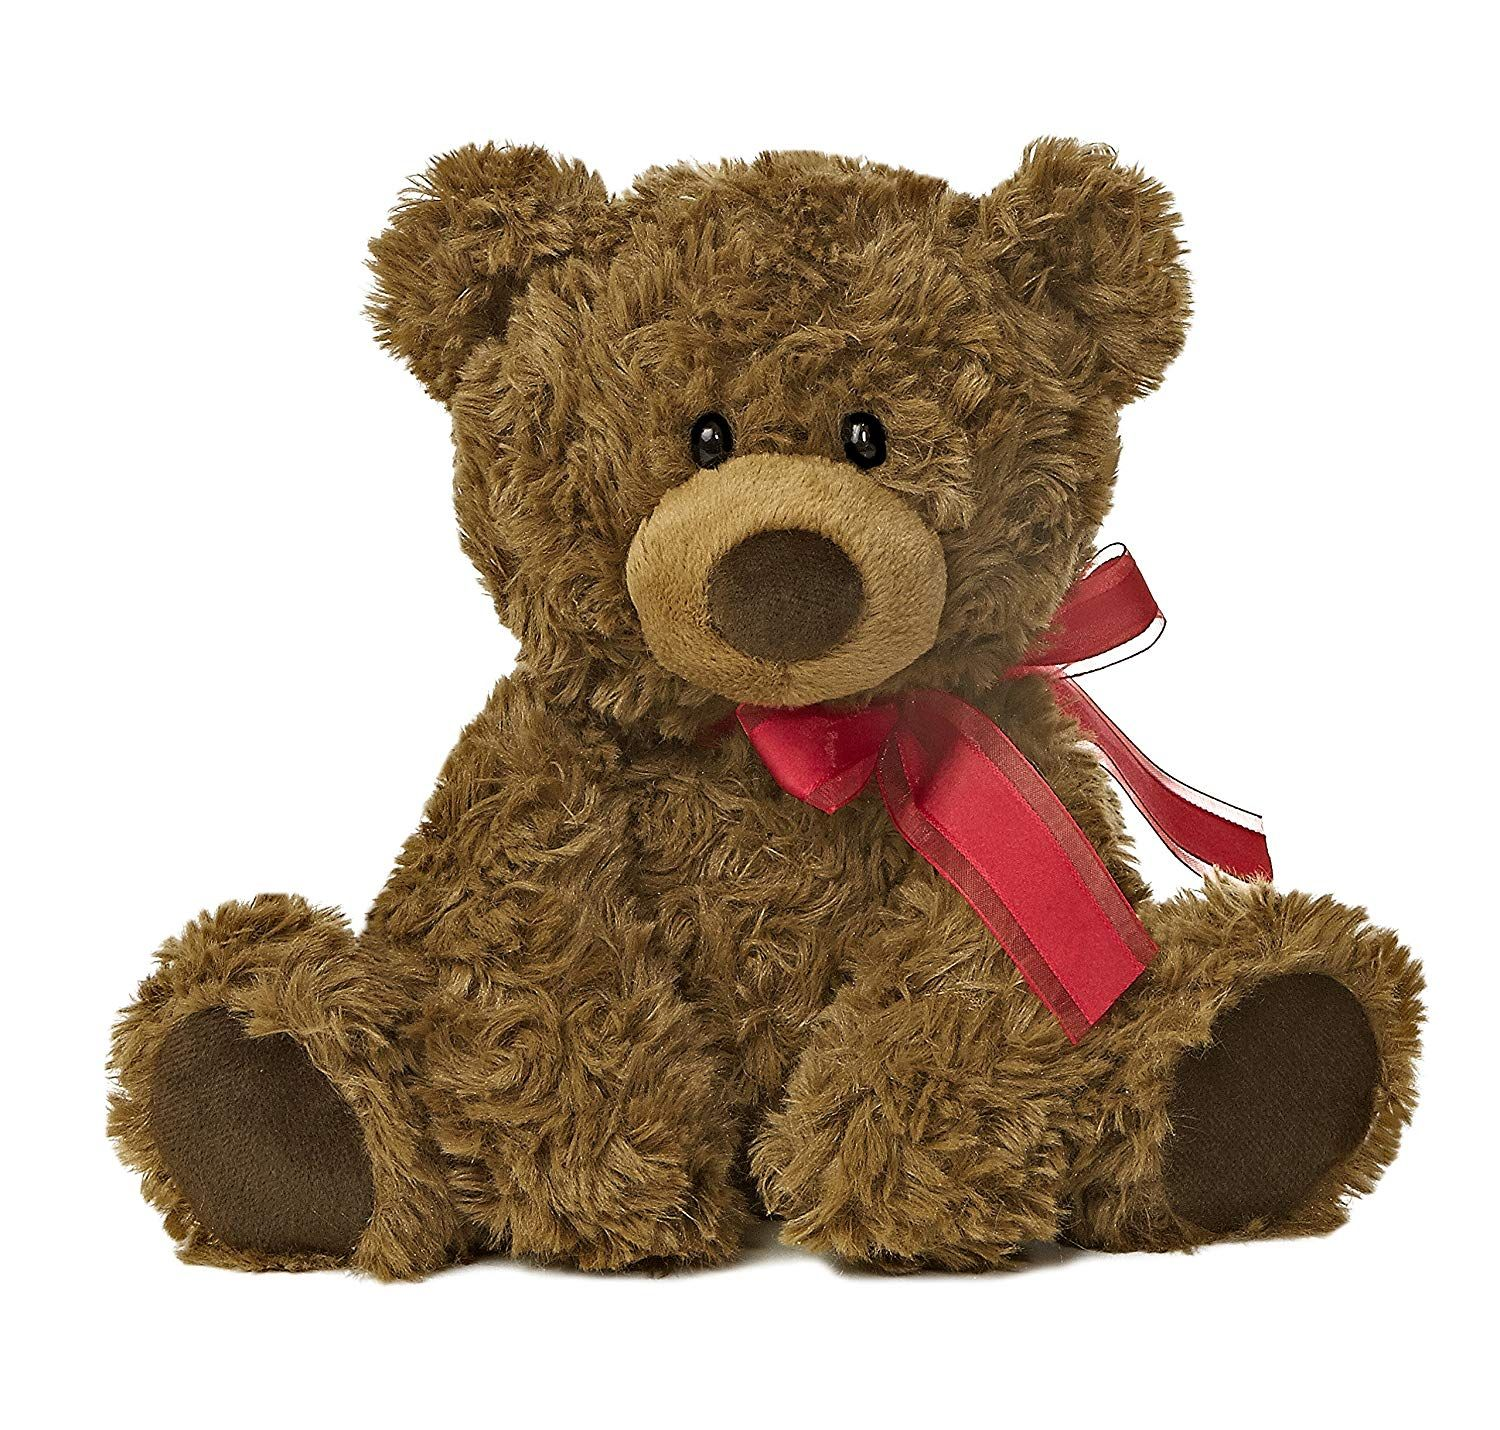 You Re Never Too Old For Teddy Bear Bear Stuffed Animal Dark Brown Teddy Bear Teddy Bear Stuffed Animal [ 1430 x 1500 Pixel ]